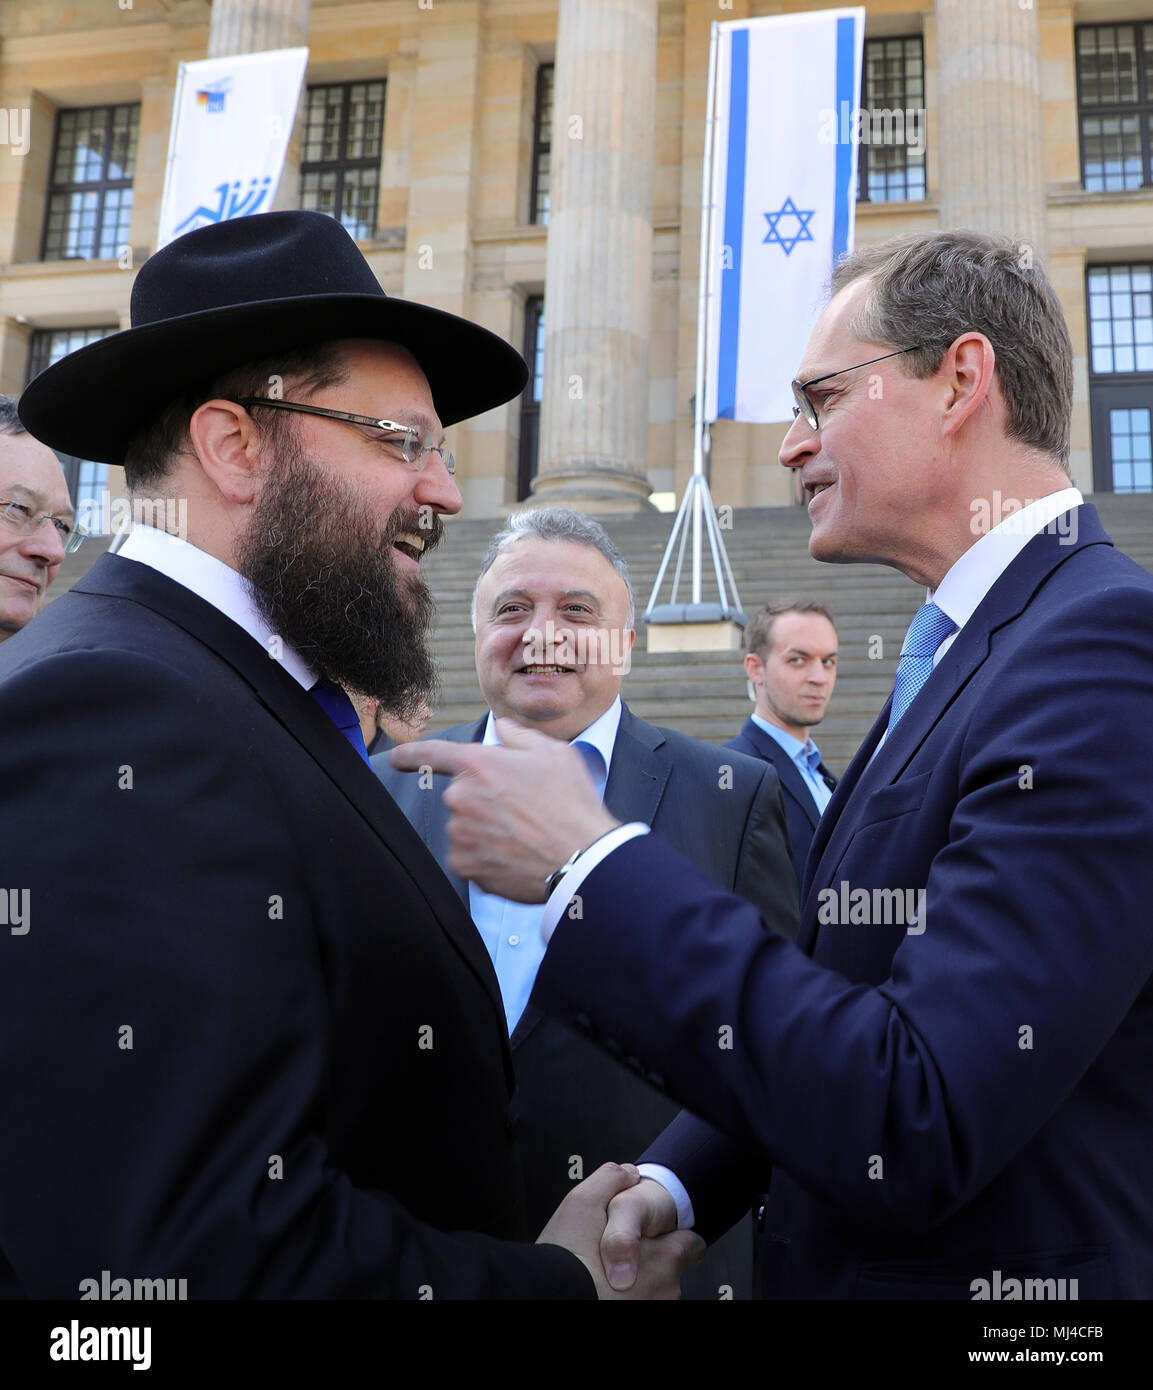 Berlin, Germany. Berlin, Germany. 04th May, 2018. 04 May 2018, Germany, Berlin: Rabi Yehuda Teichtal (L-R), the Israeli ambassador in Germany Jeremy Issacharoff and Berlin's mayor from the Social Democratic Party (SPD), taking part in the celebration of the independence of Israel at the Gendarmenmarkt Credit: Wolfgang Kumm/dpa/Alamy Live News Credit: dpa picture alliance/Alamy Live News - Stock Image